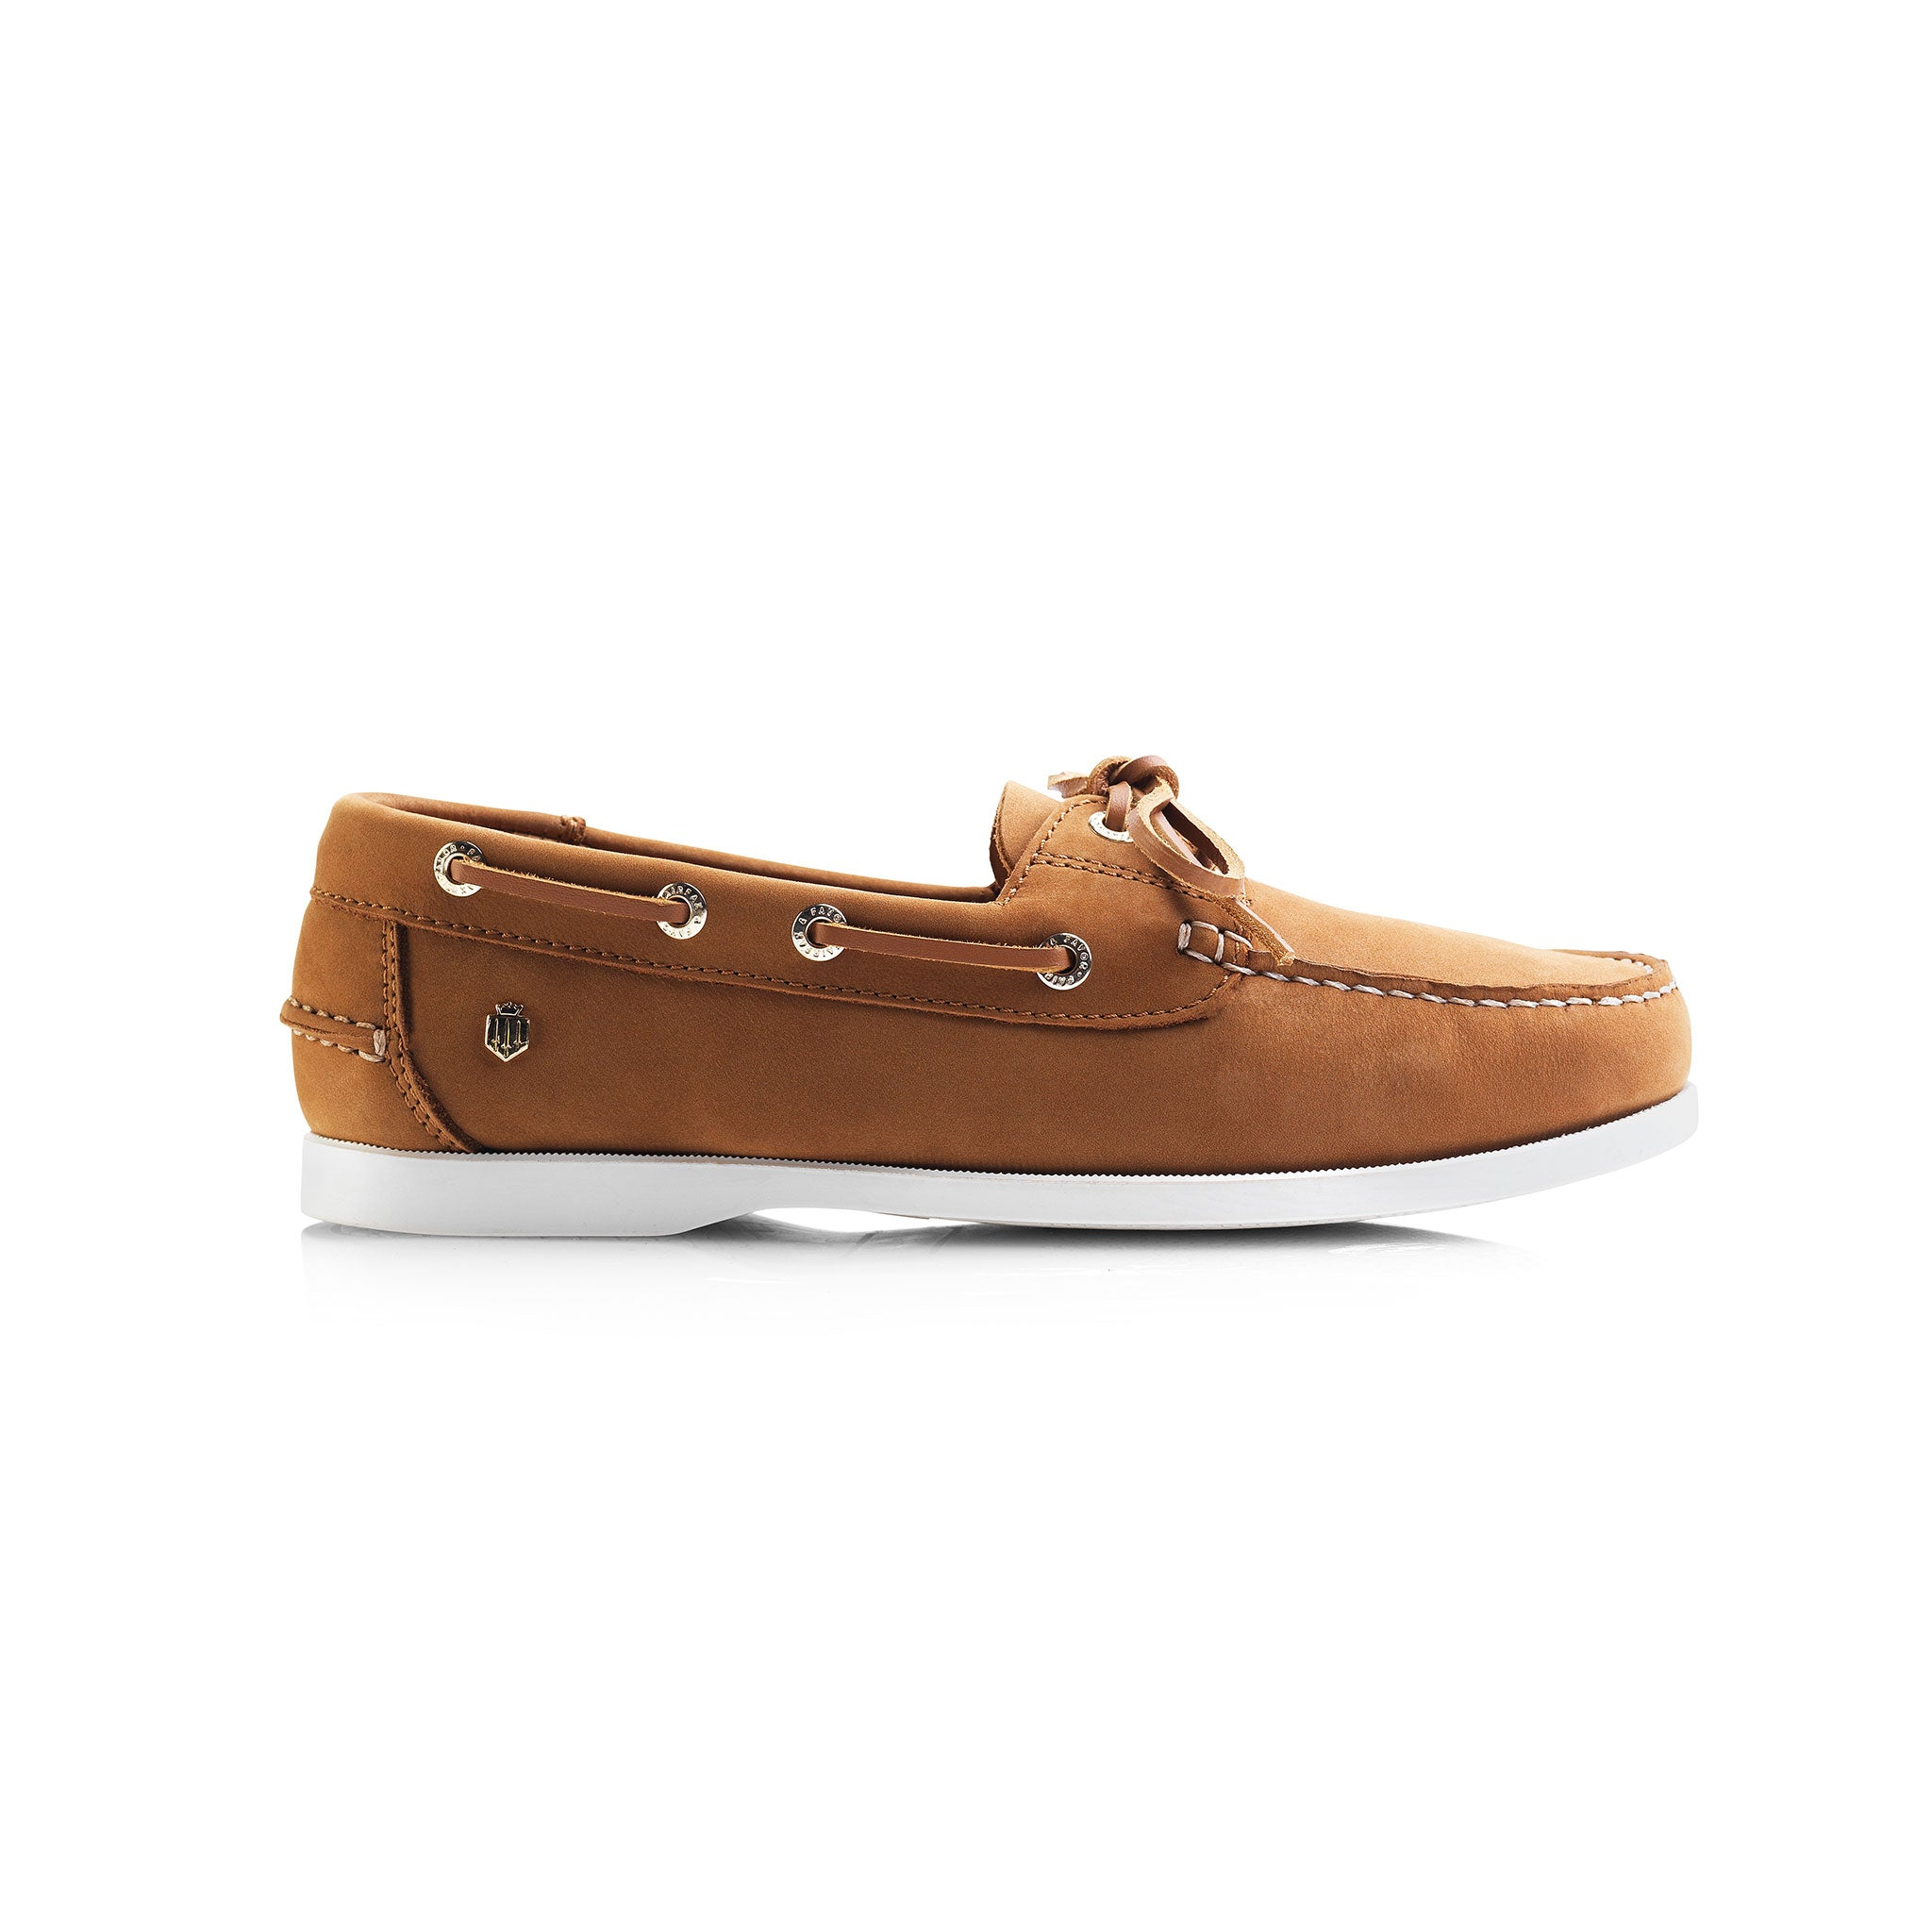 Fairfax and Favor Salcombe Deck Shoe for Ladies in Tan